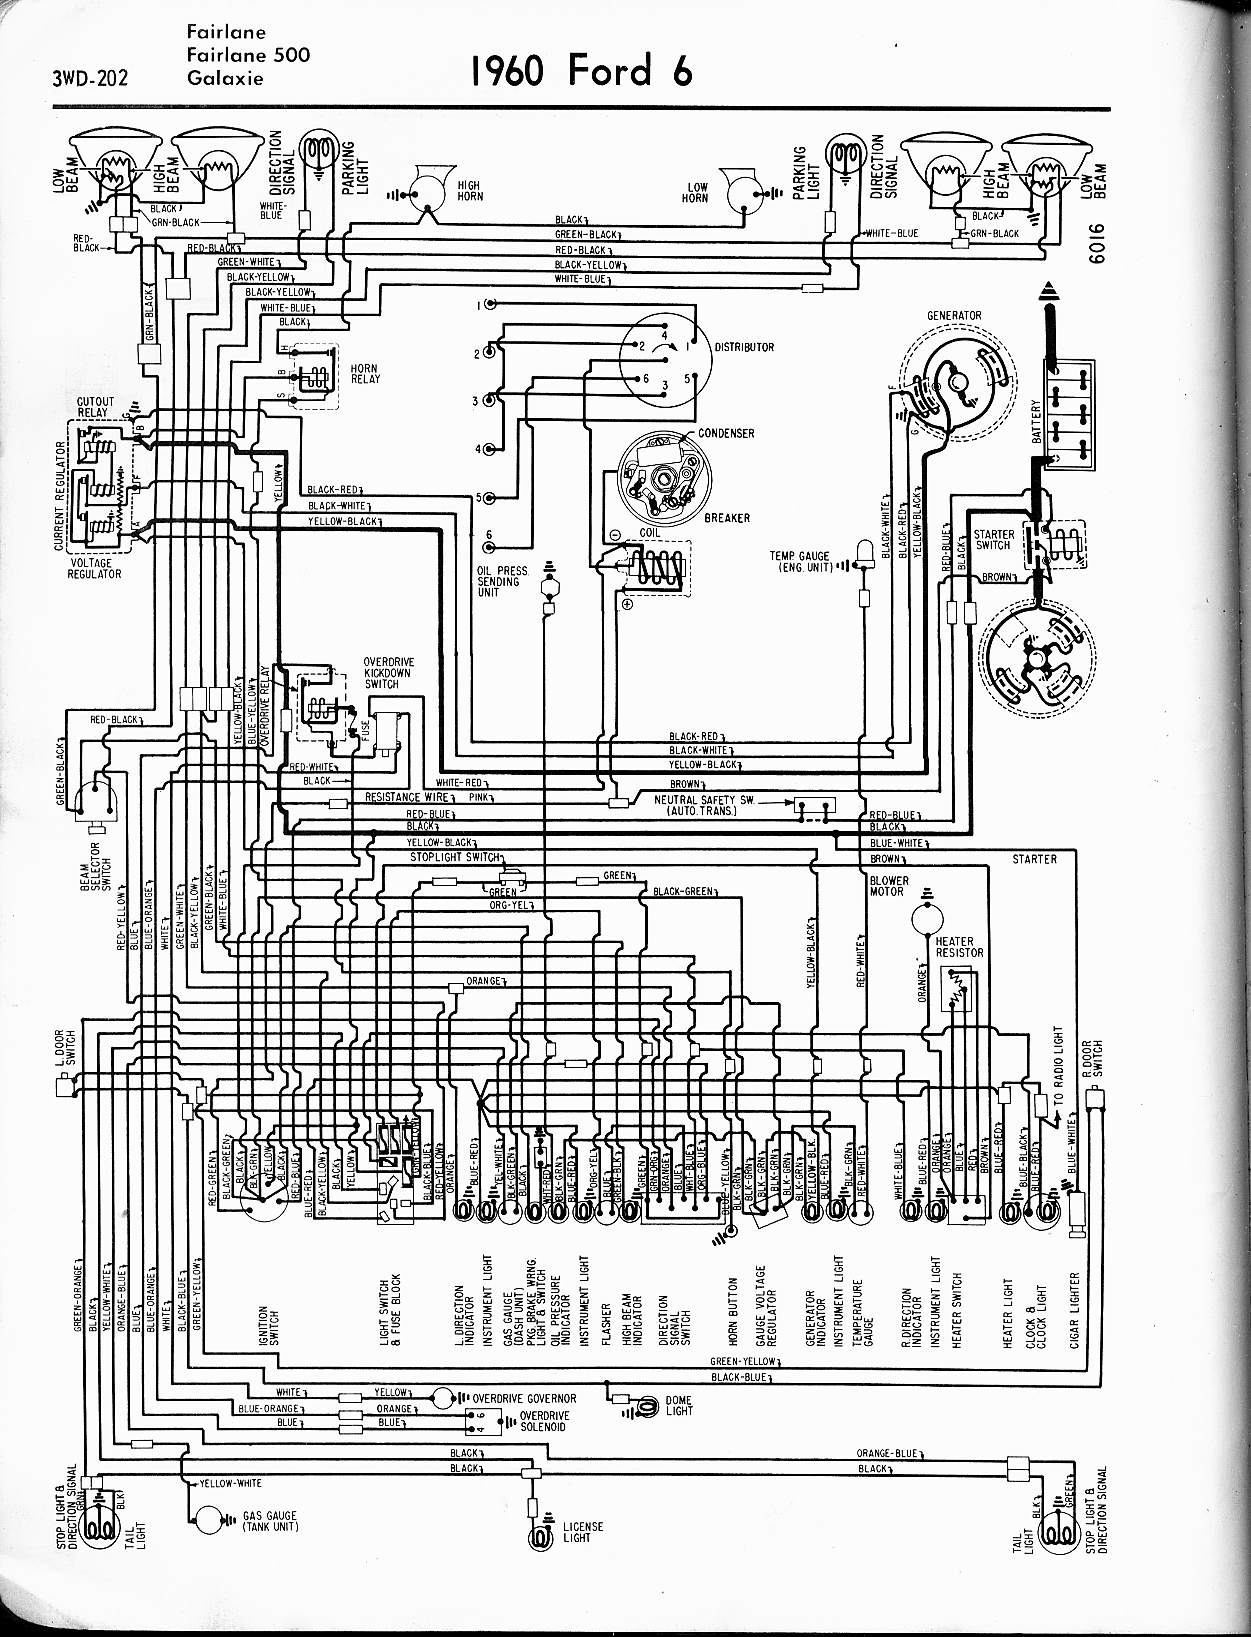 MWire5765 202 wiring diagrams 1954 ford f100 truck readingrat net wiring diagrams for 2017 ford trucks at webbmarketing.co